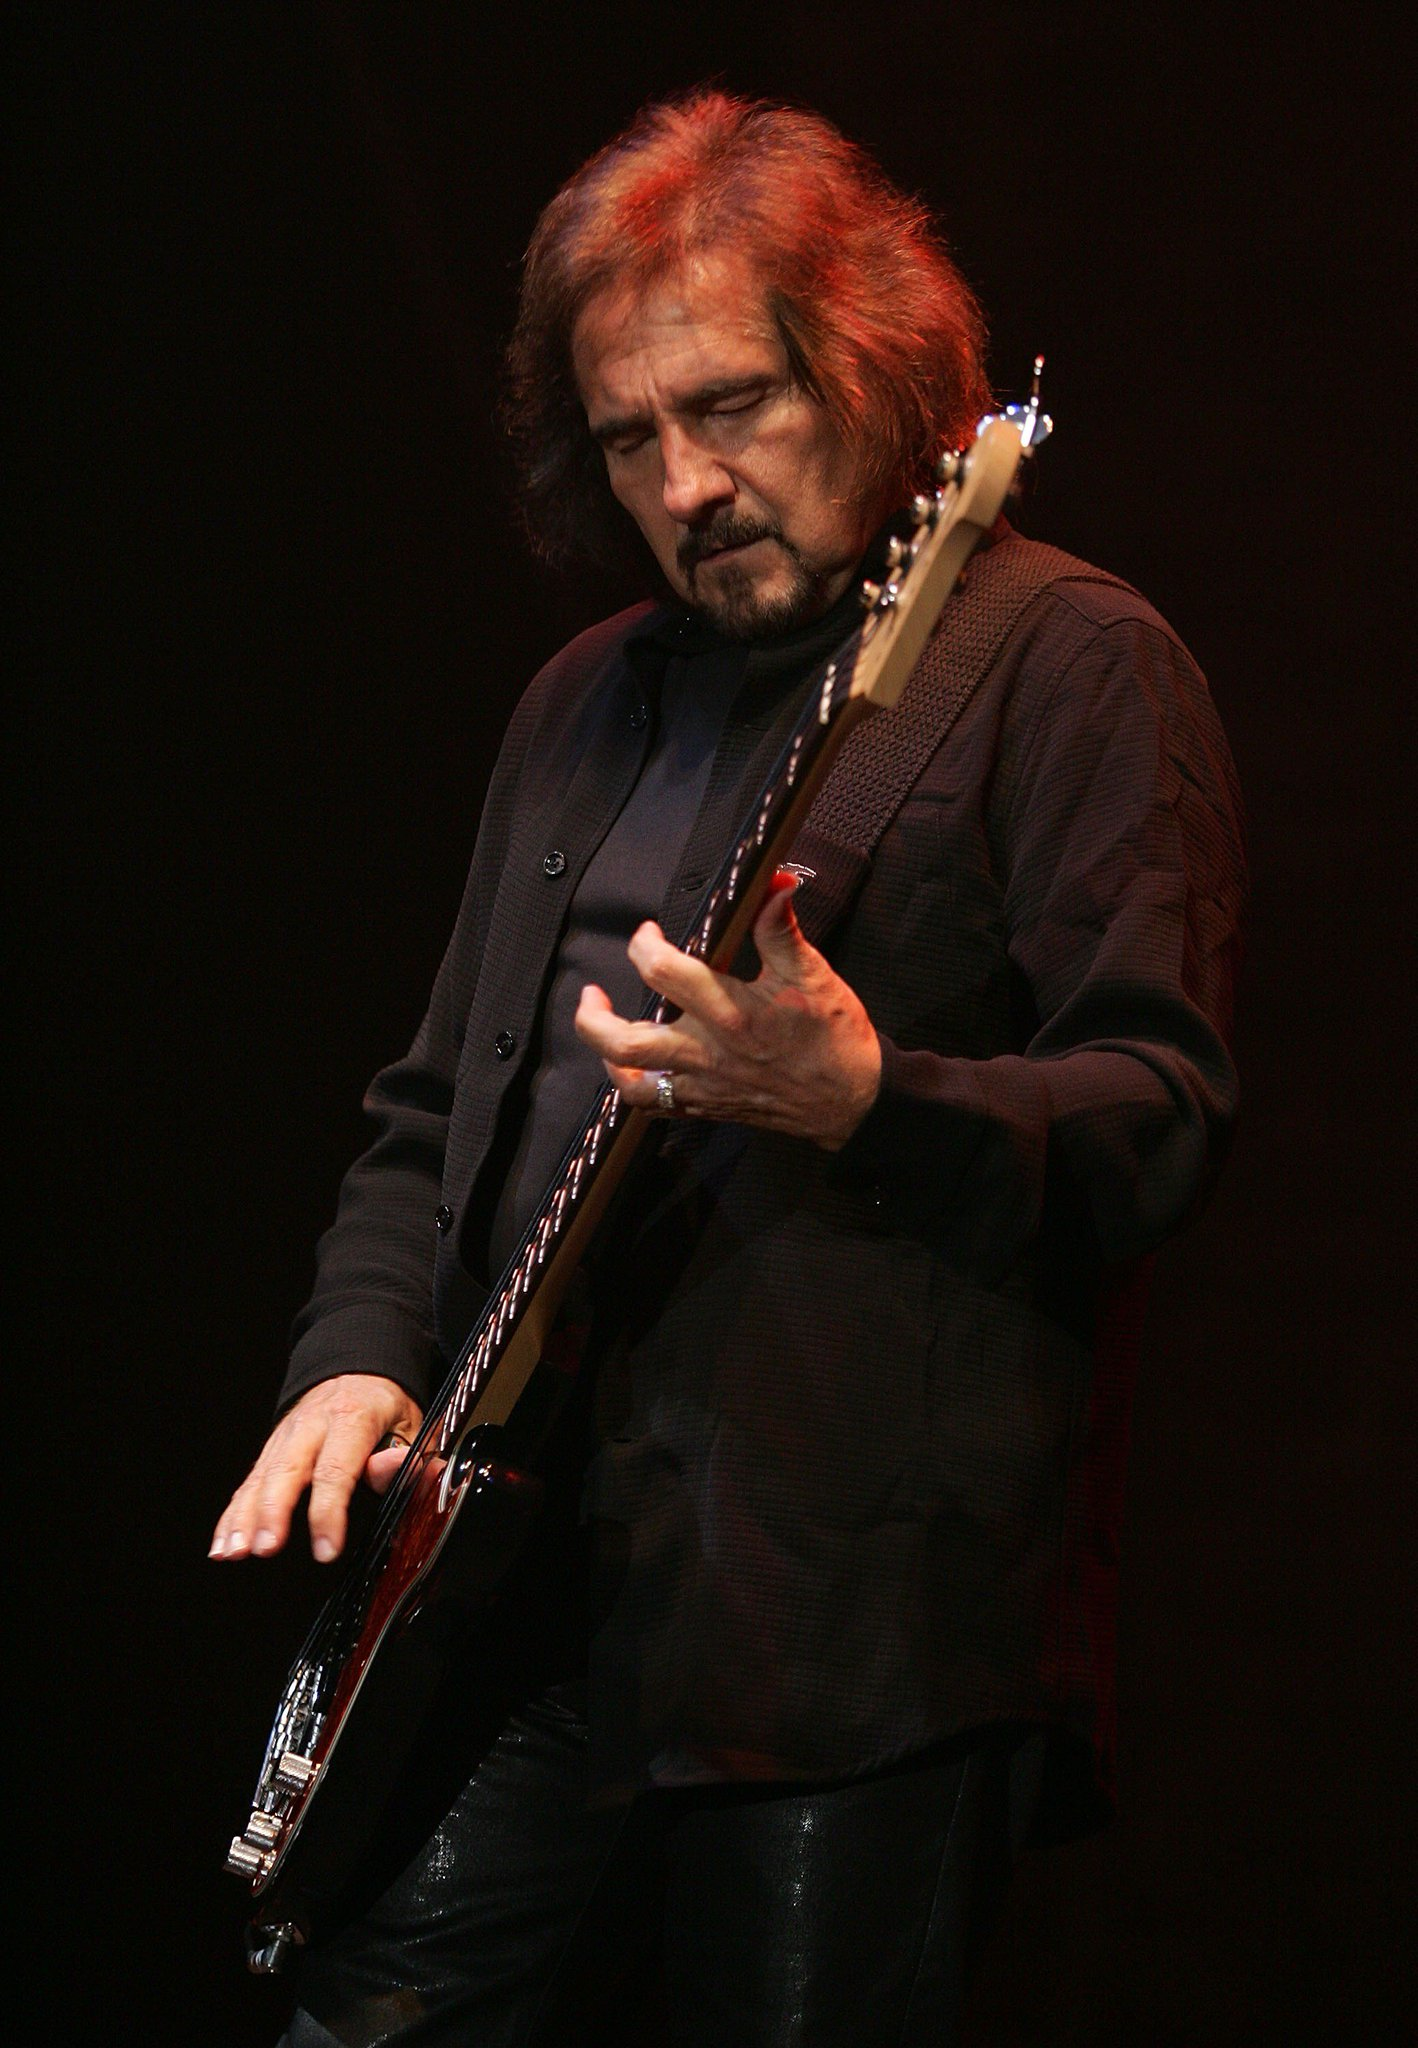 Happy Birthday Geezer Butler!